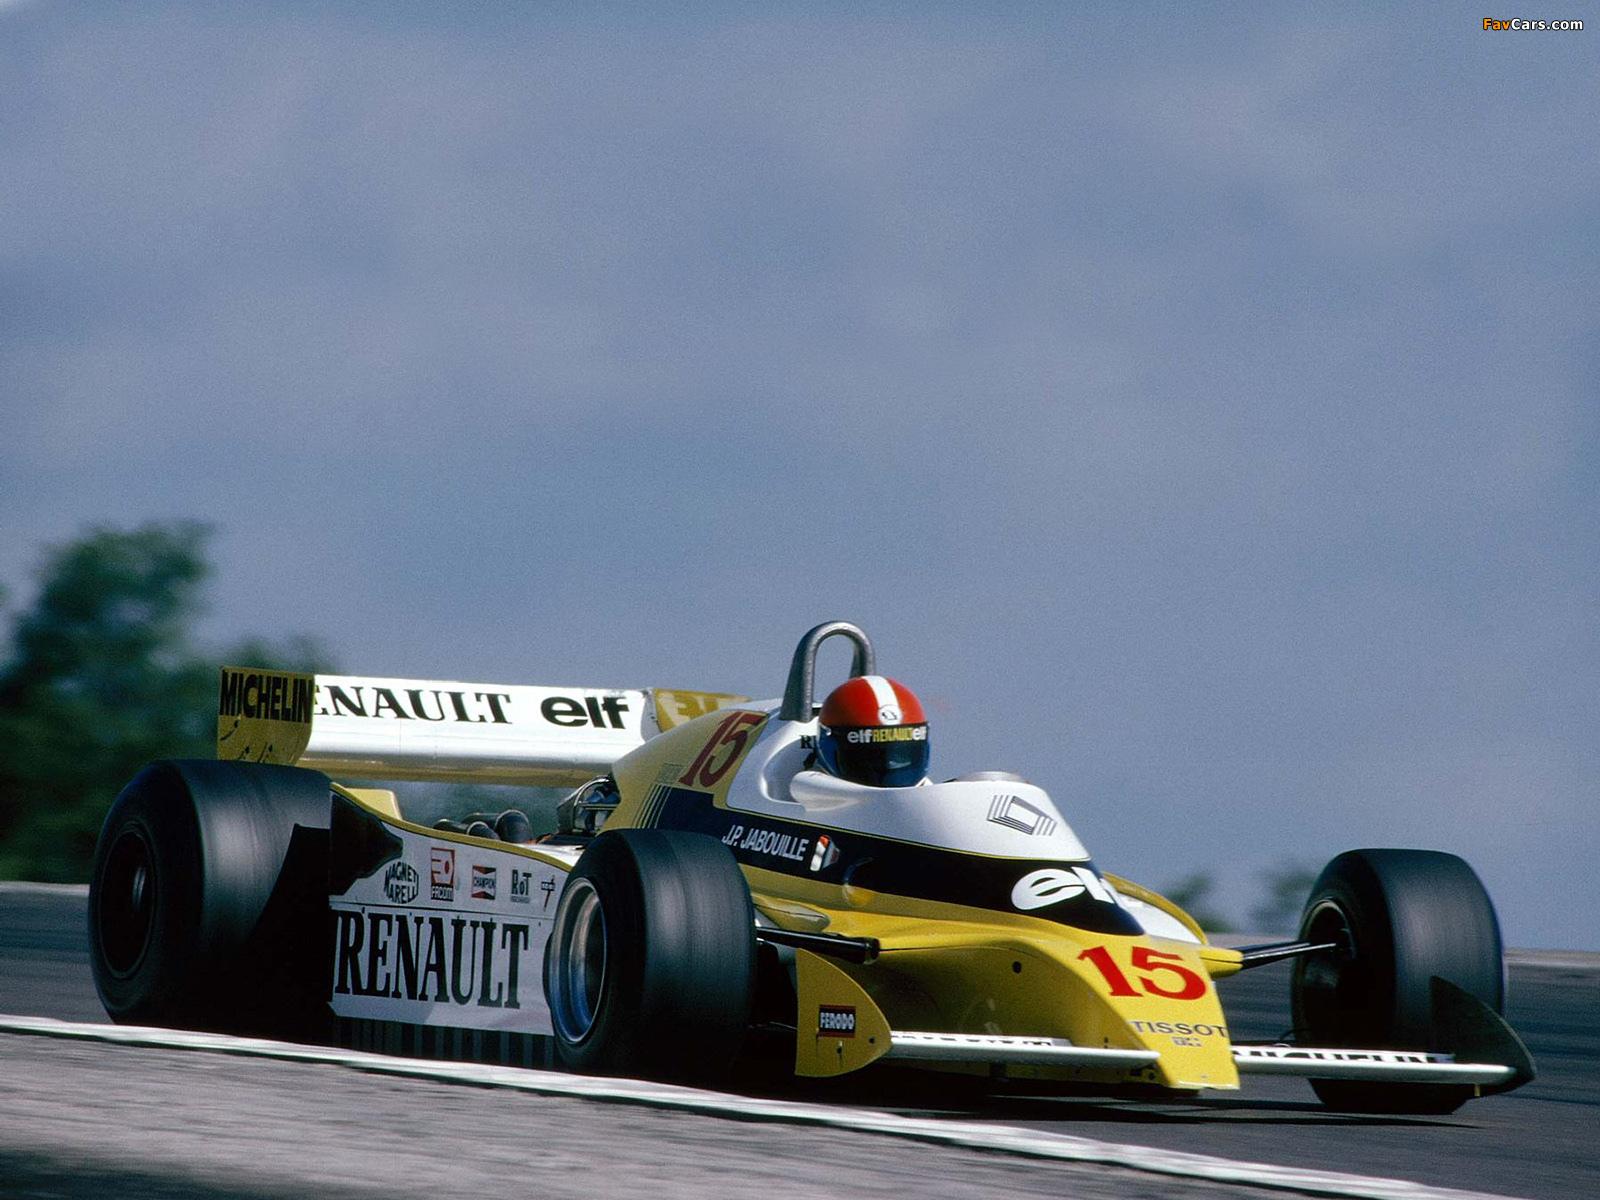 Renault rs10 photo - 3